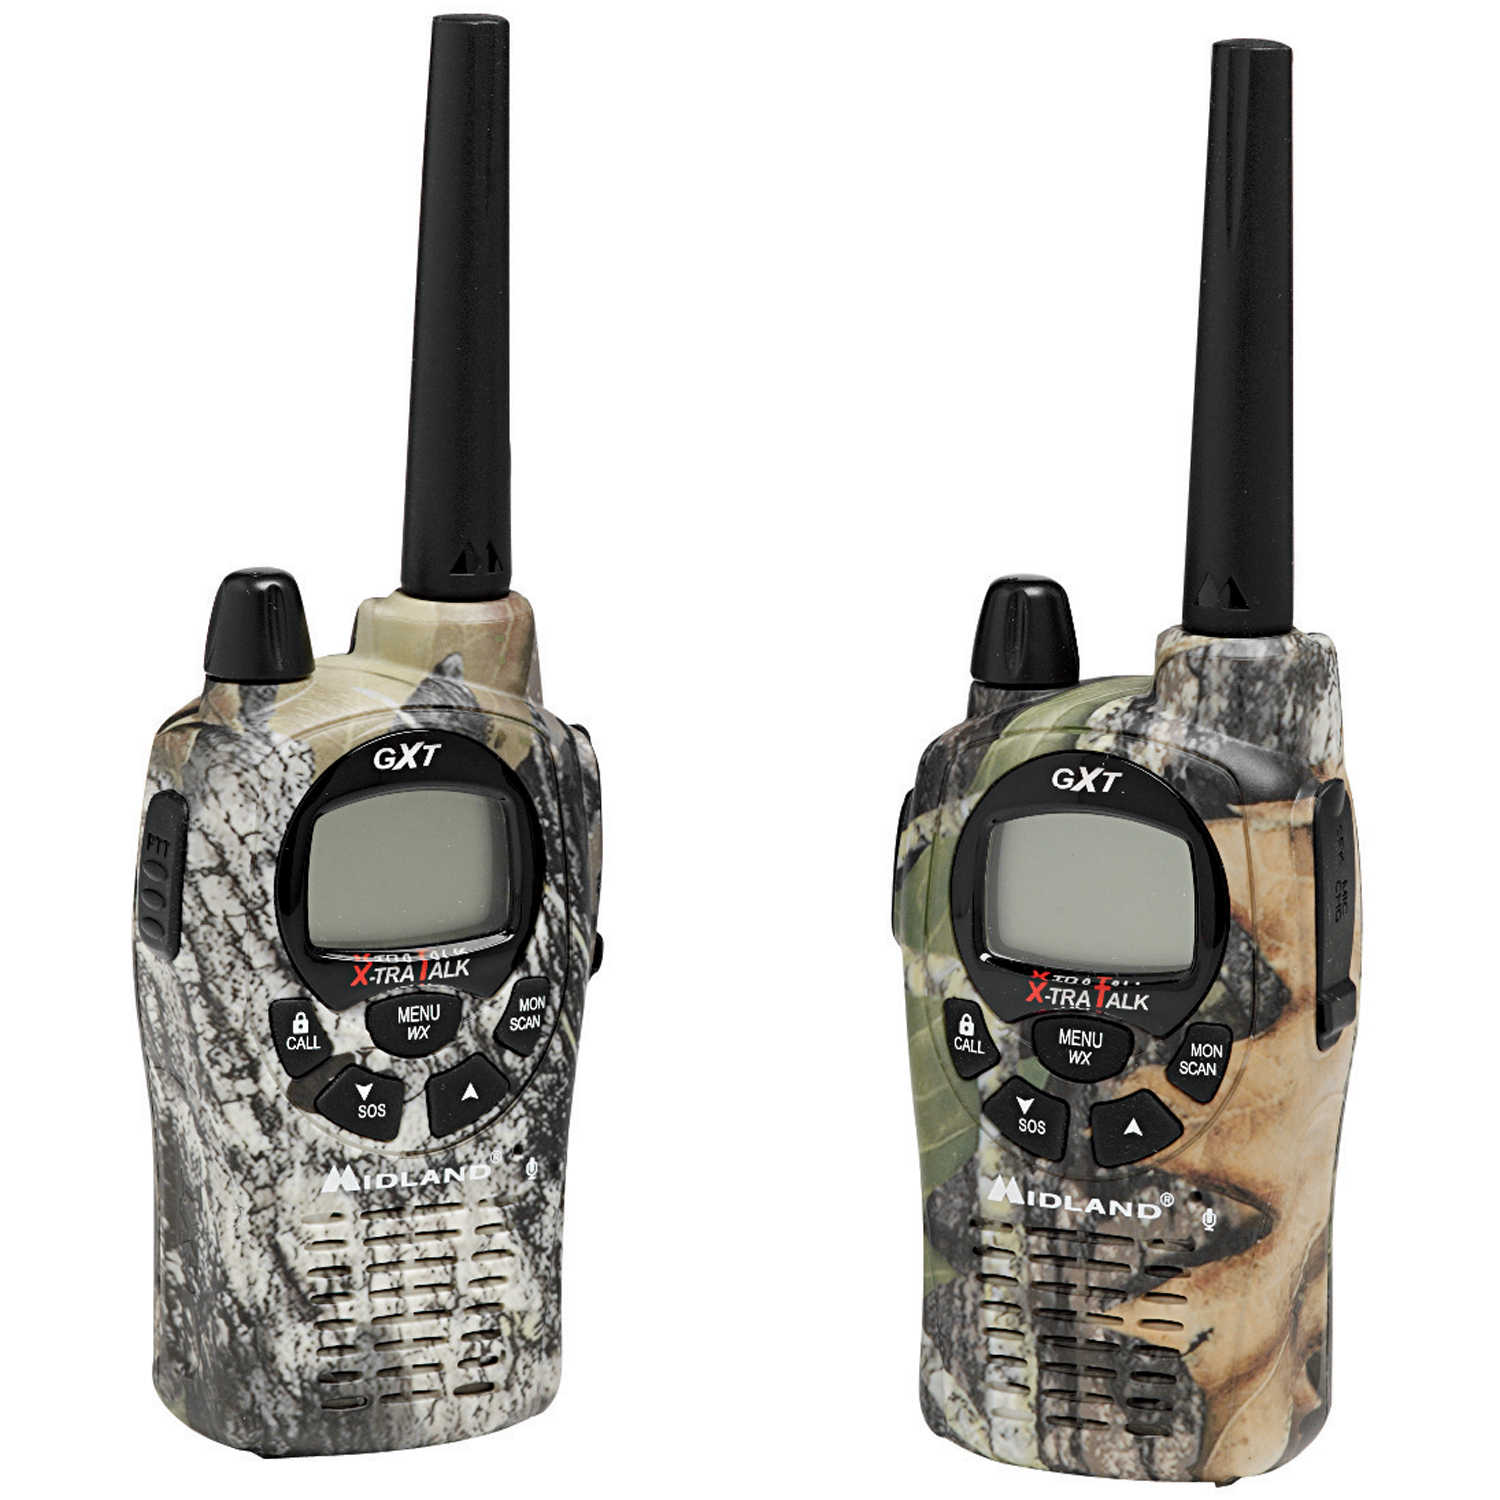 Midland Walkie Talkie >> Midland Gxt1050 Walkie Talkies